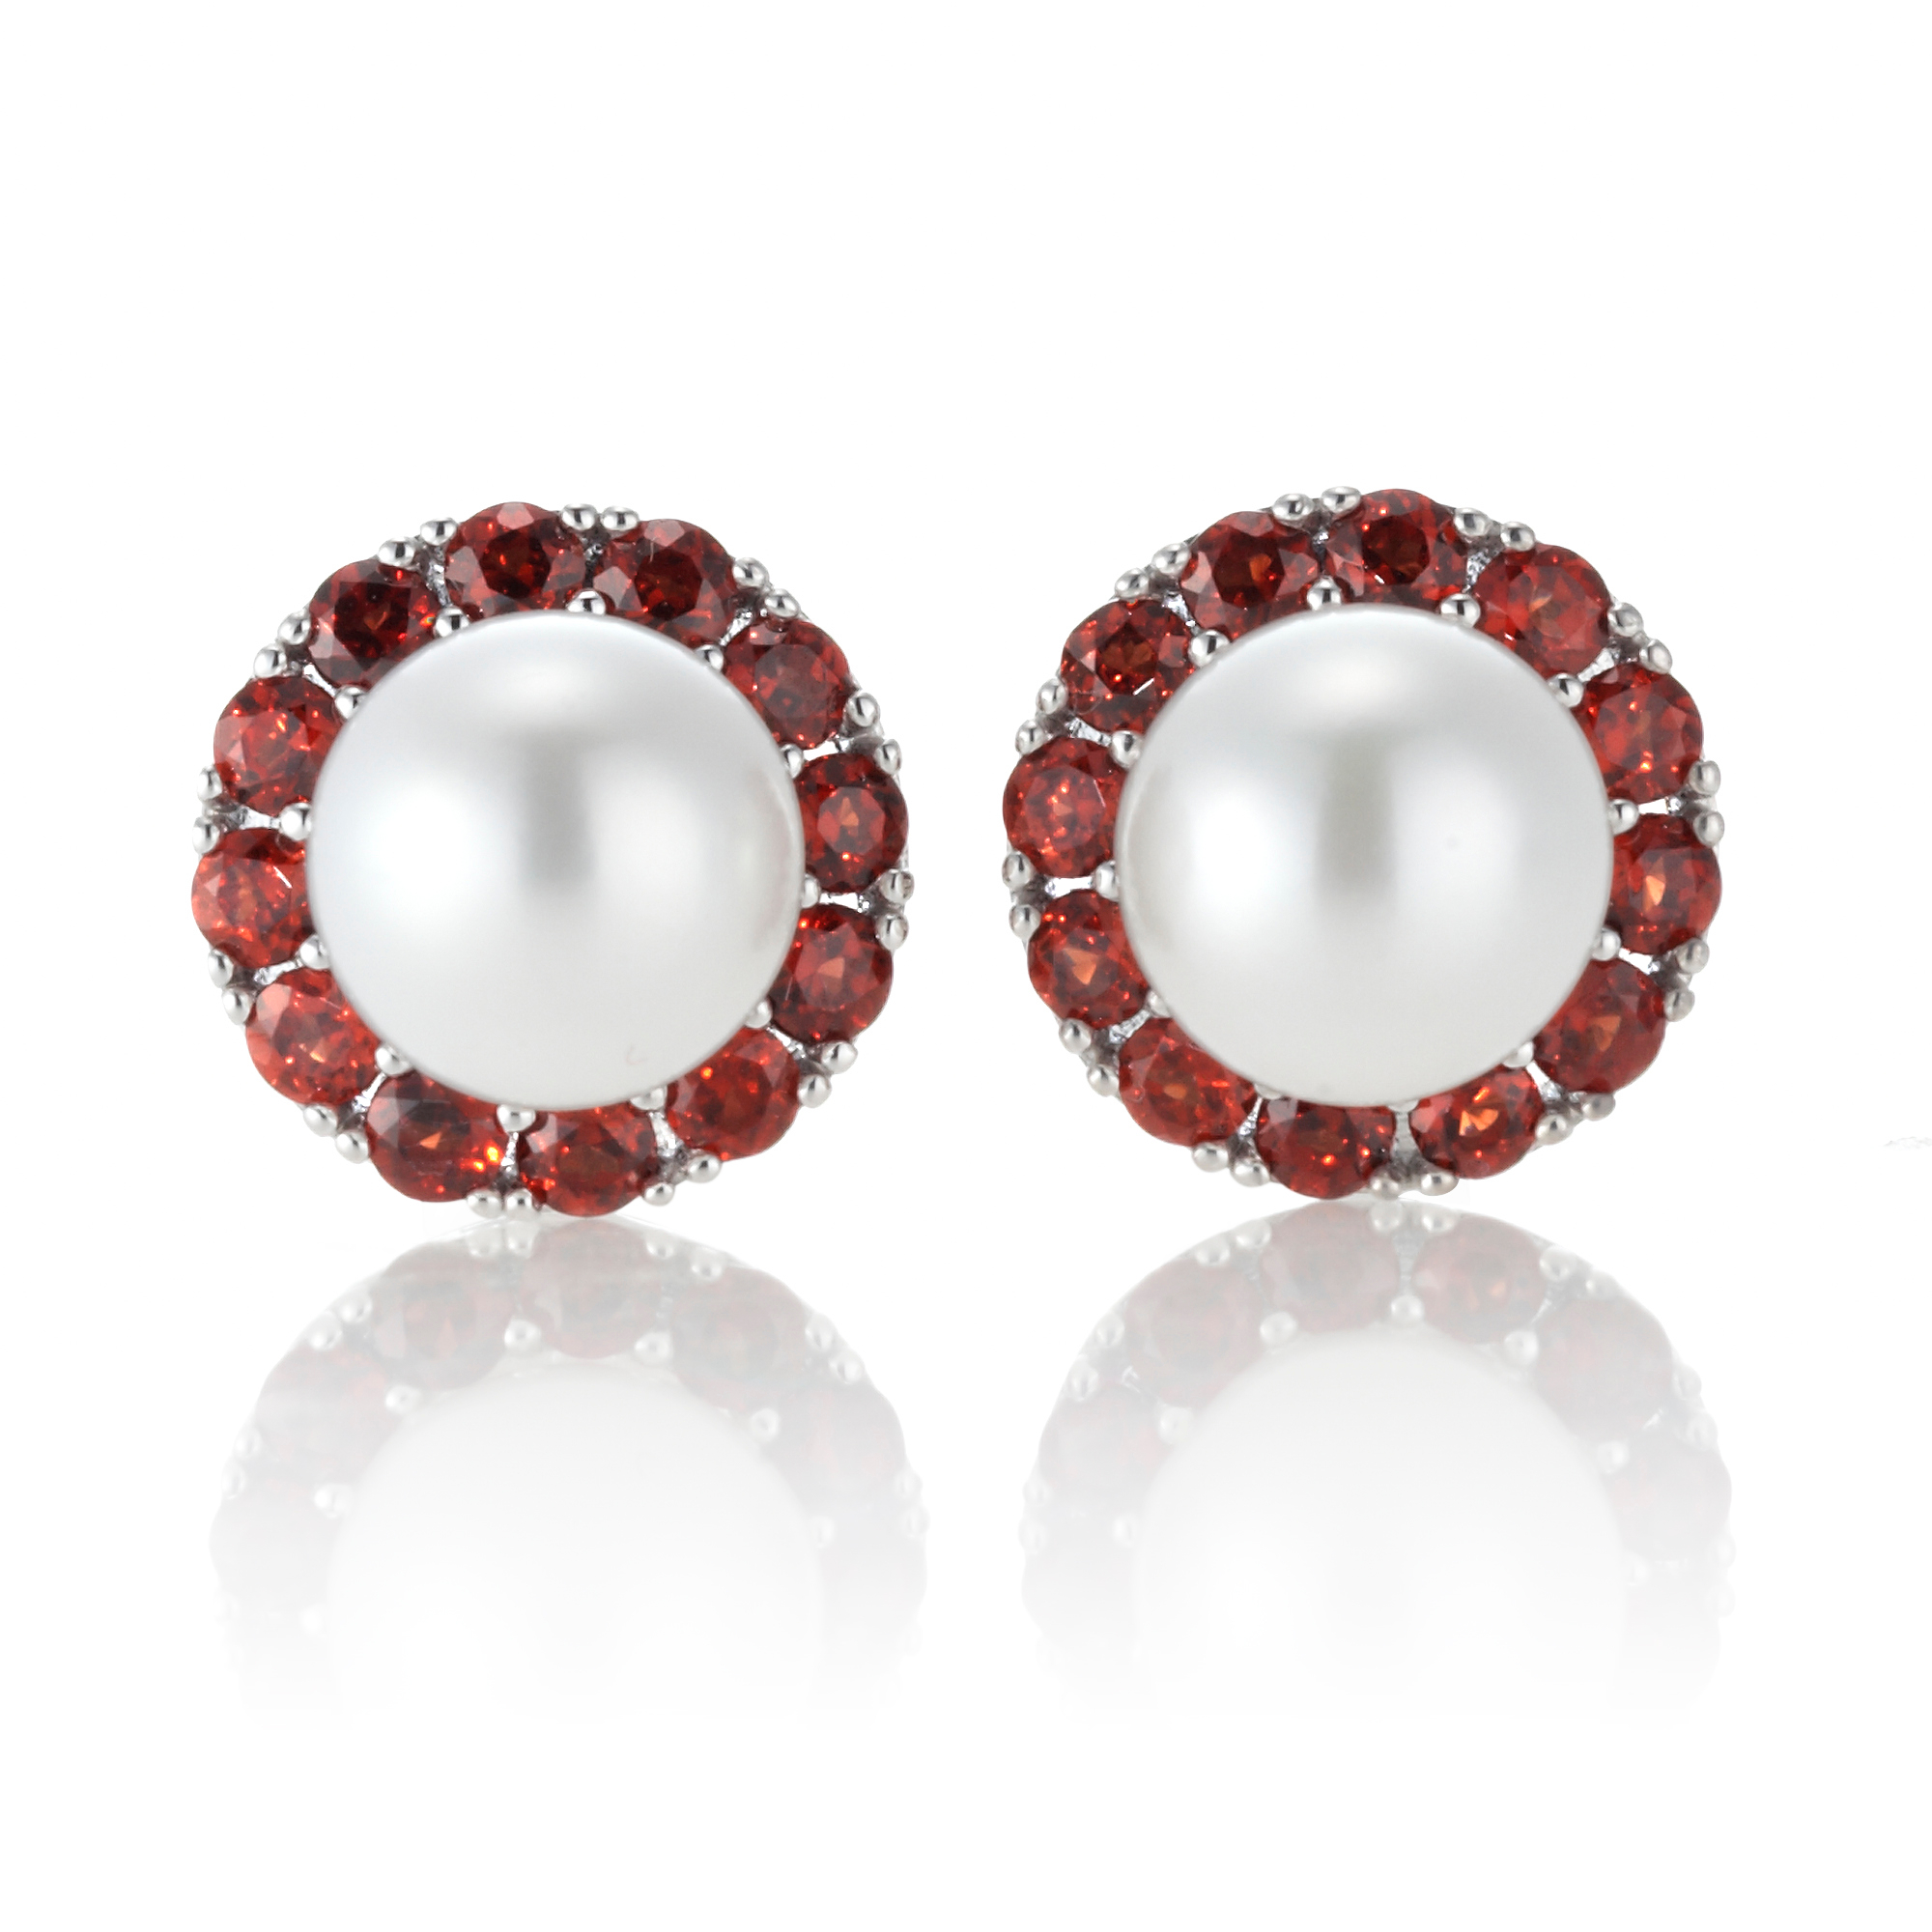 Gump's Garnet & Pearl Earrings